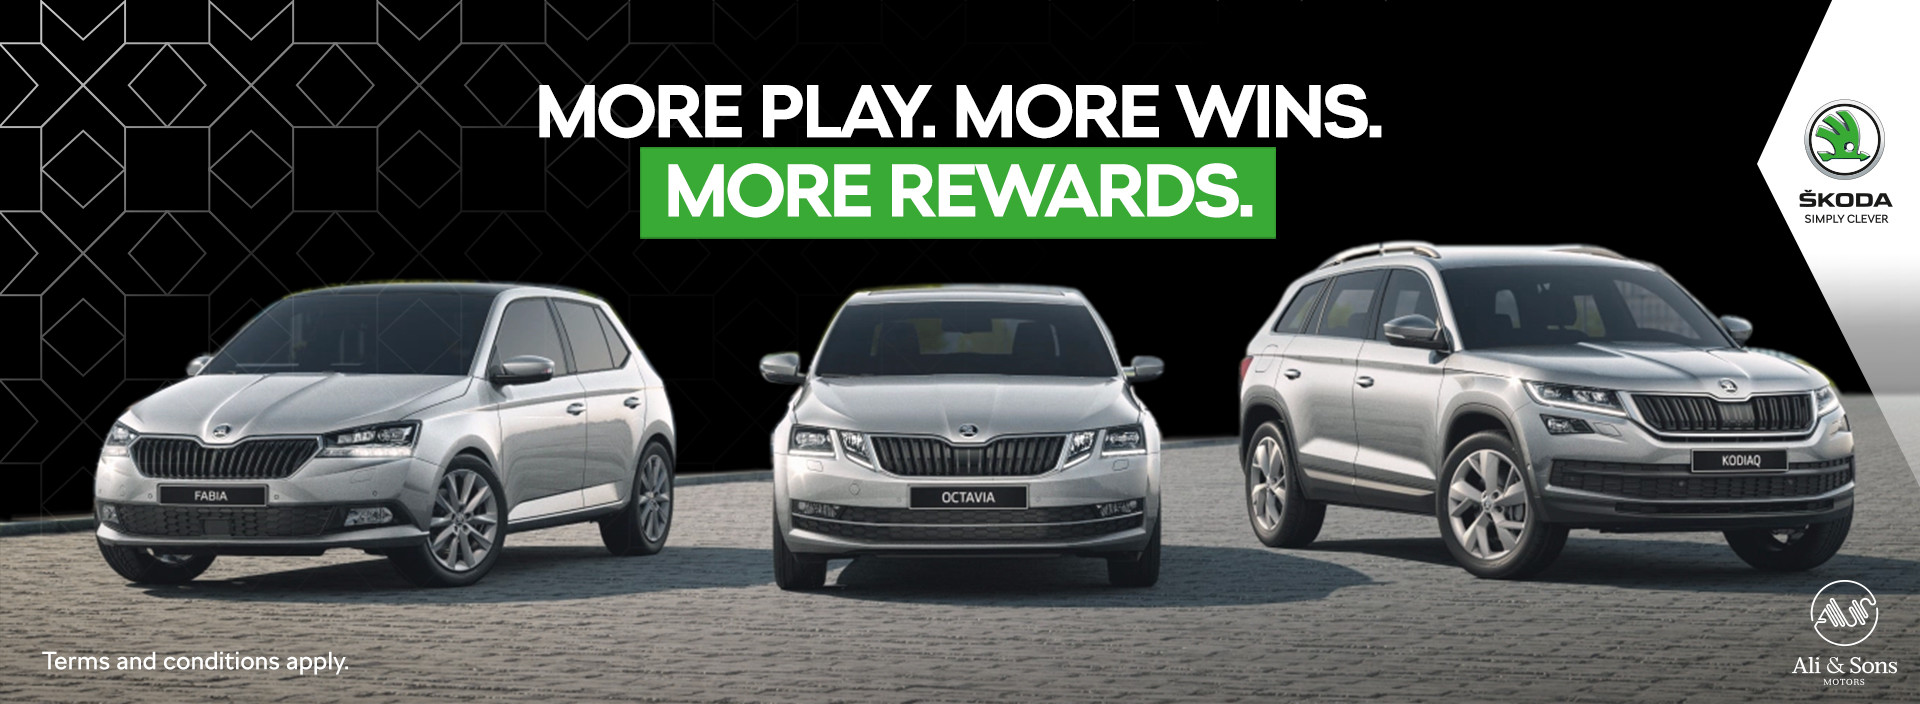 More Play. More Wins. More Rewards.